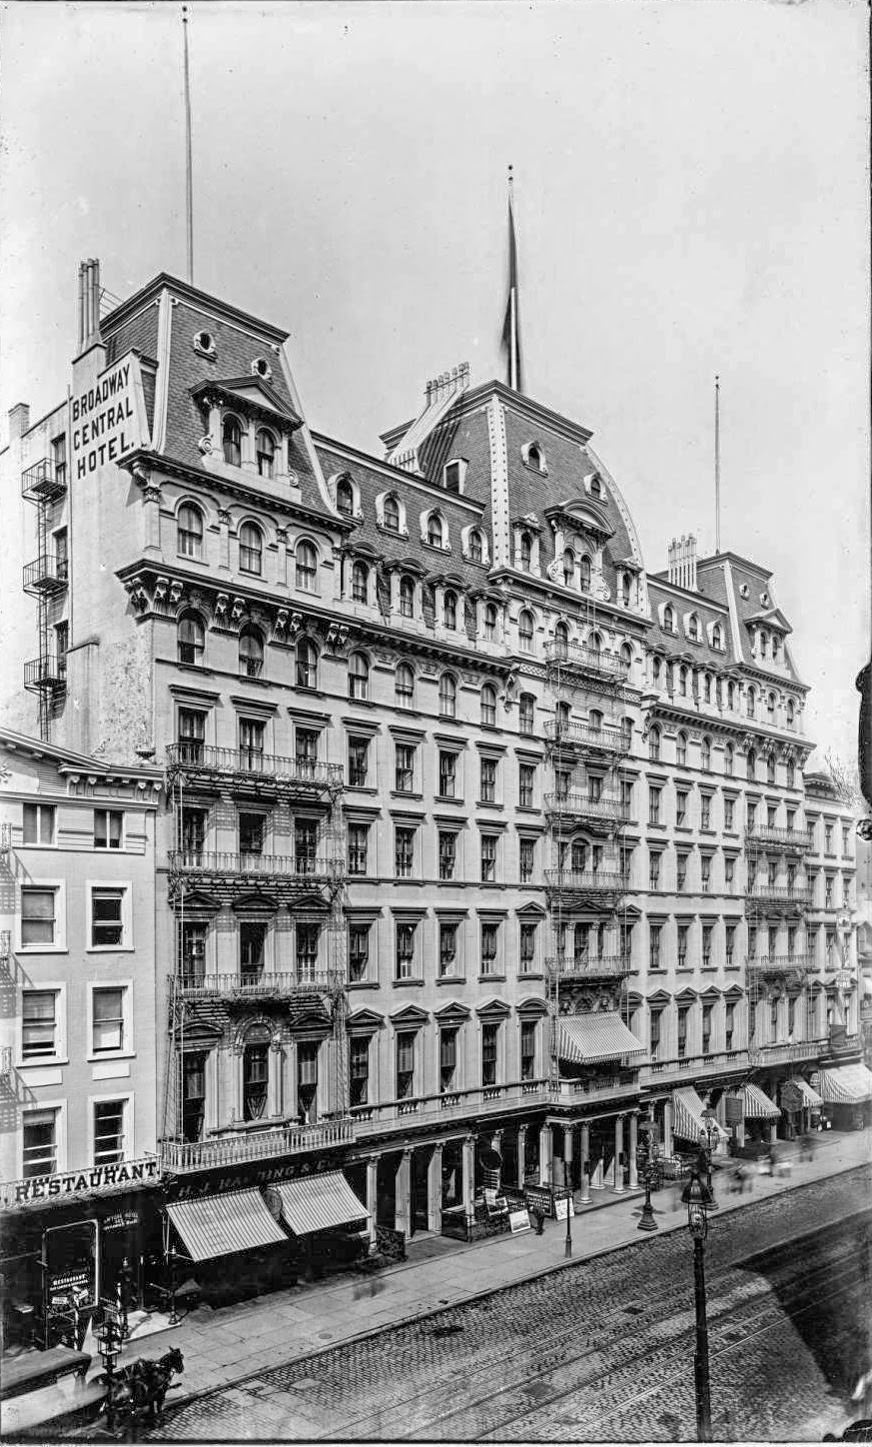 The Broadway Central Hotel, Broadway at Bond Street, 1890